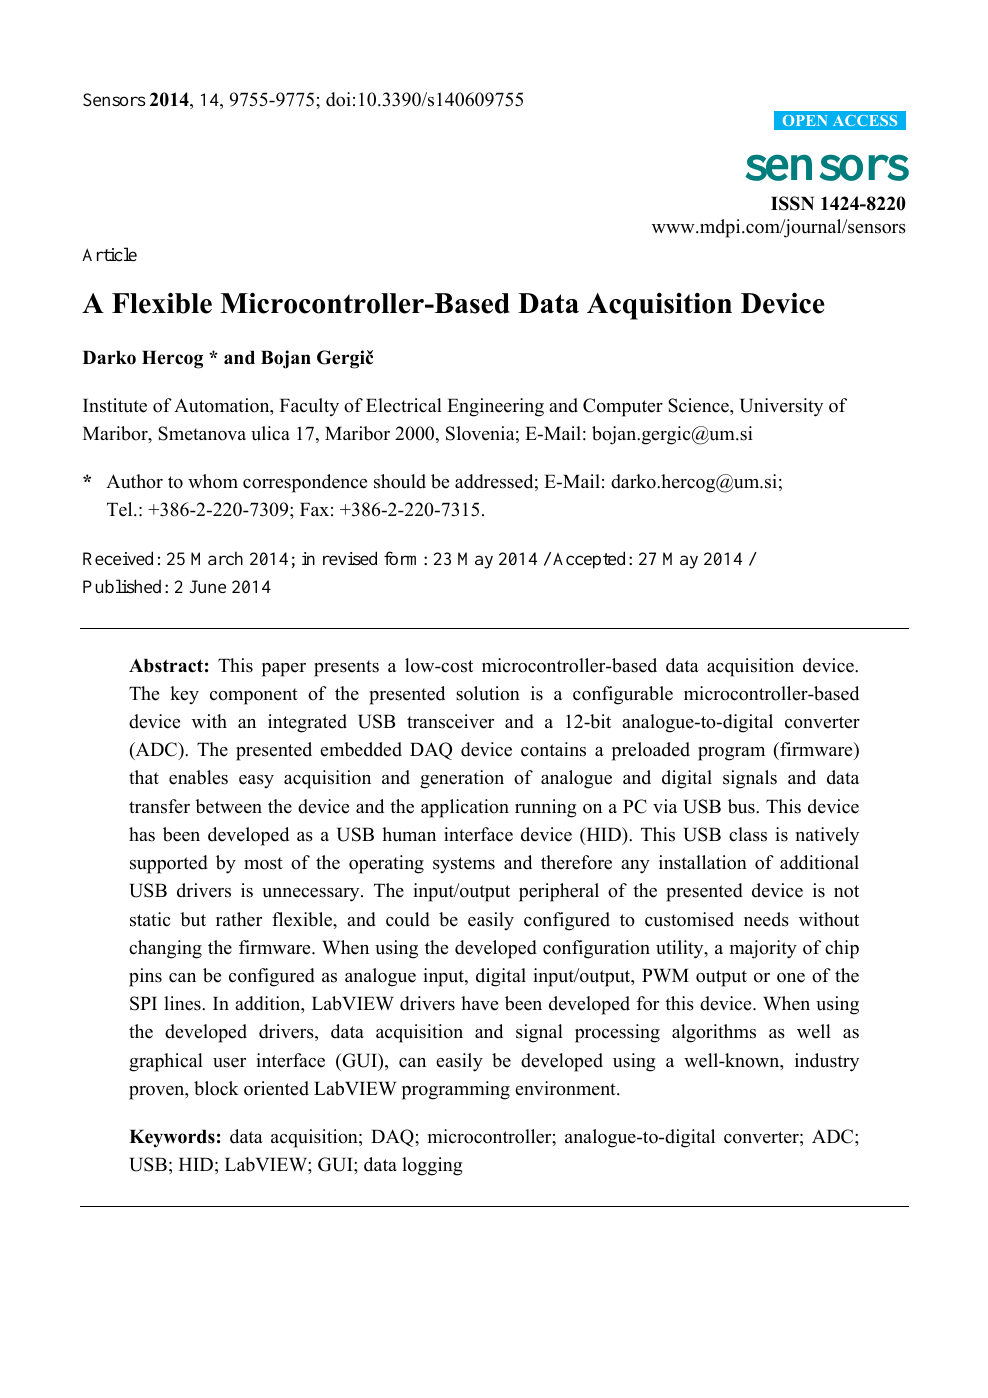 A Flexible Microcontroller-Based Data Acquisition Device